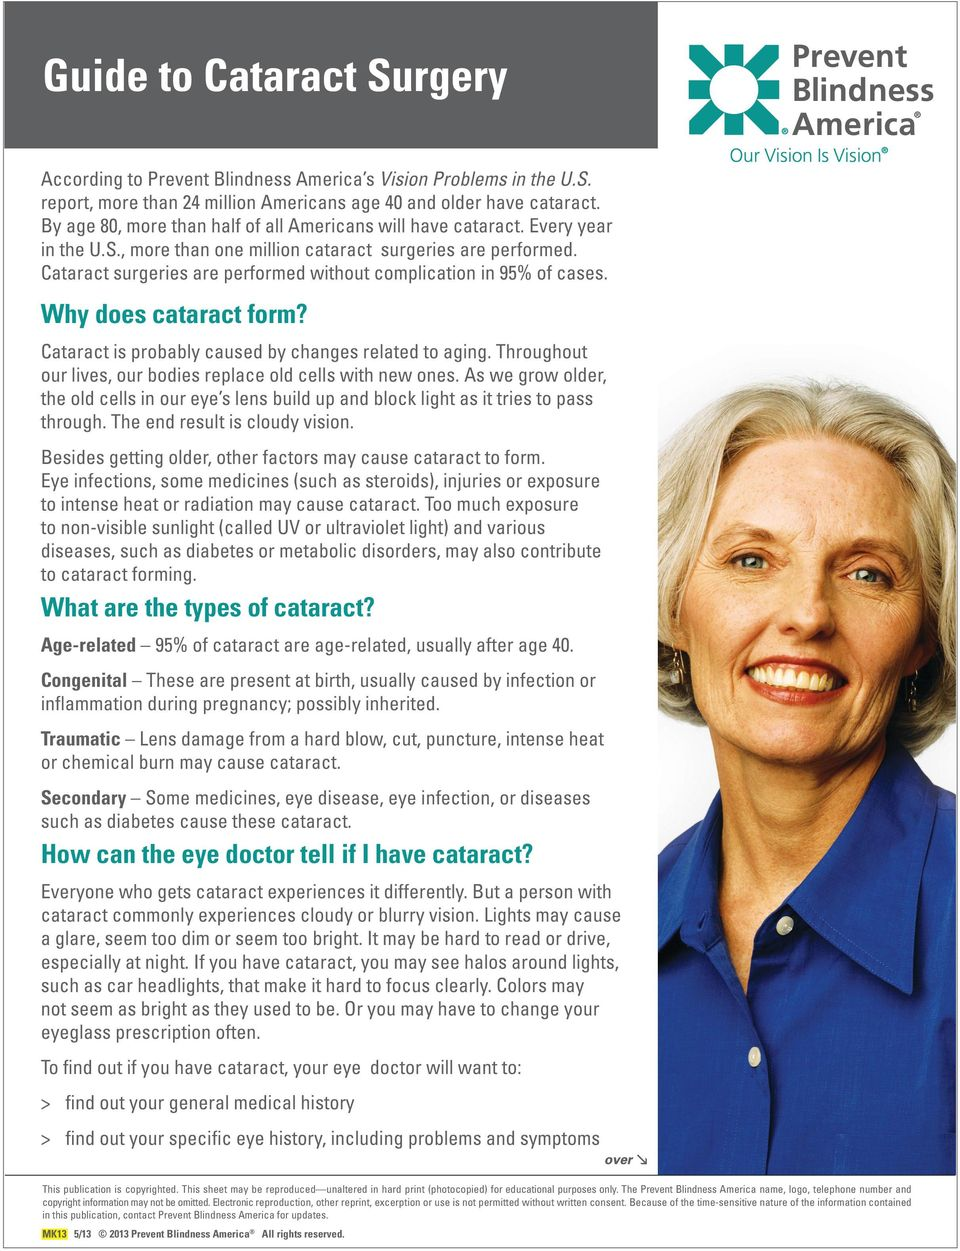 Cataract surgeries are performed without complication in 95% of cases. Why does cataract form? Cataract is probably caused by changes related to aging.